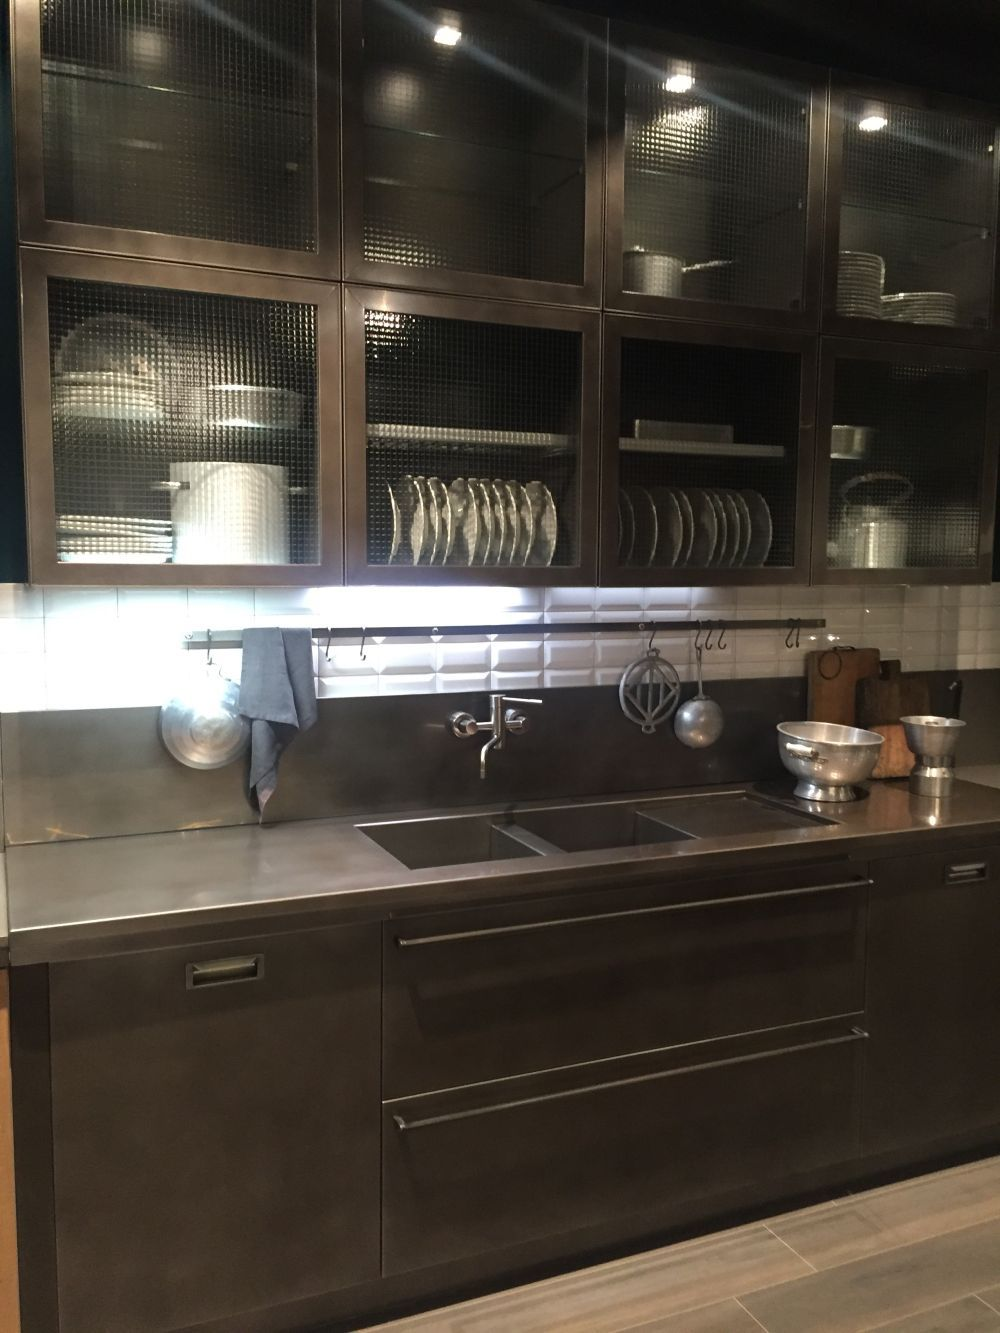 Bubbles or textured kitchen glass cabinets - Home Decorating Trends - Homedit....  QualQuest**********